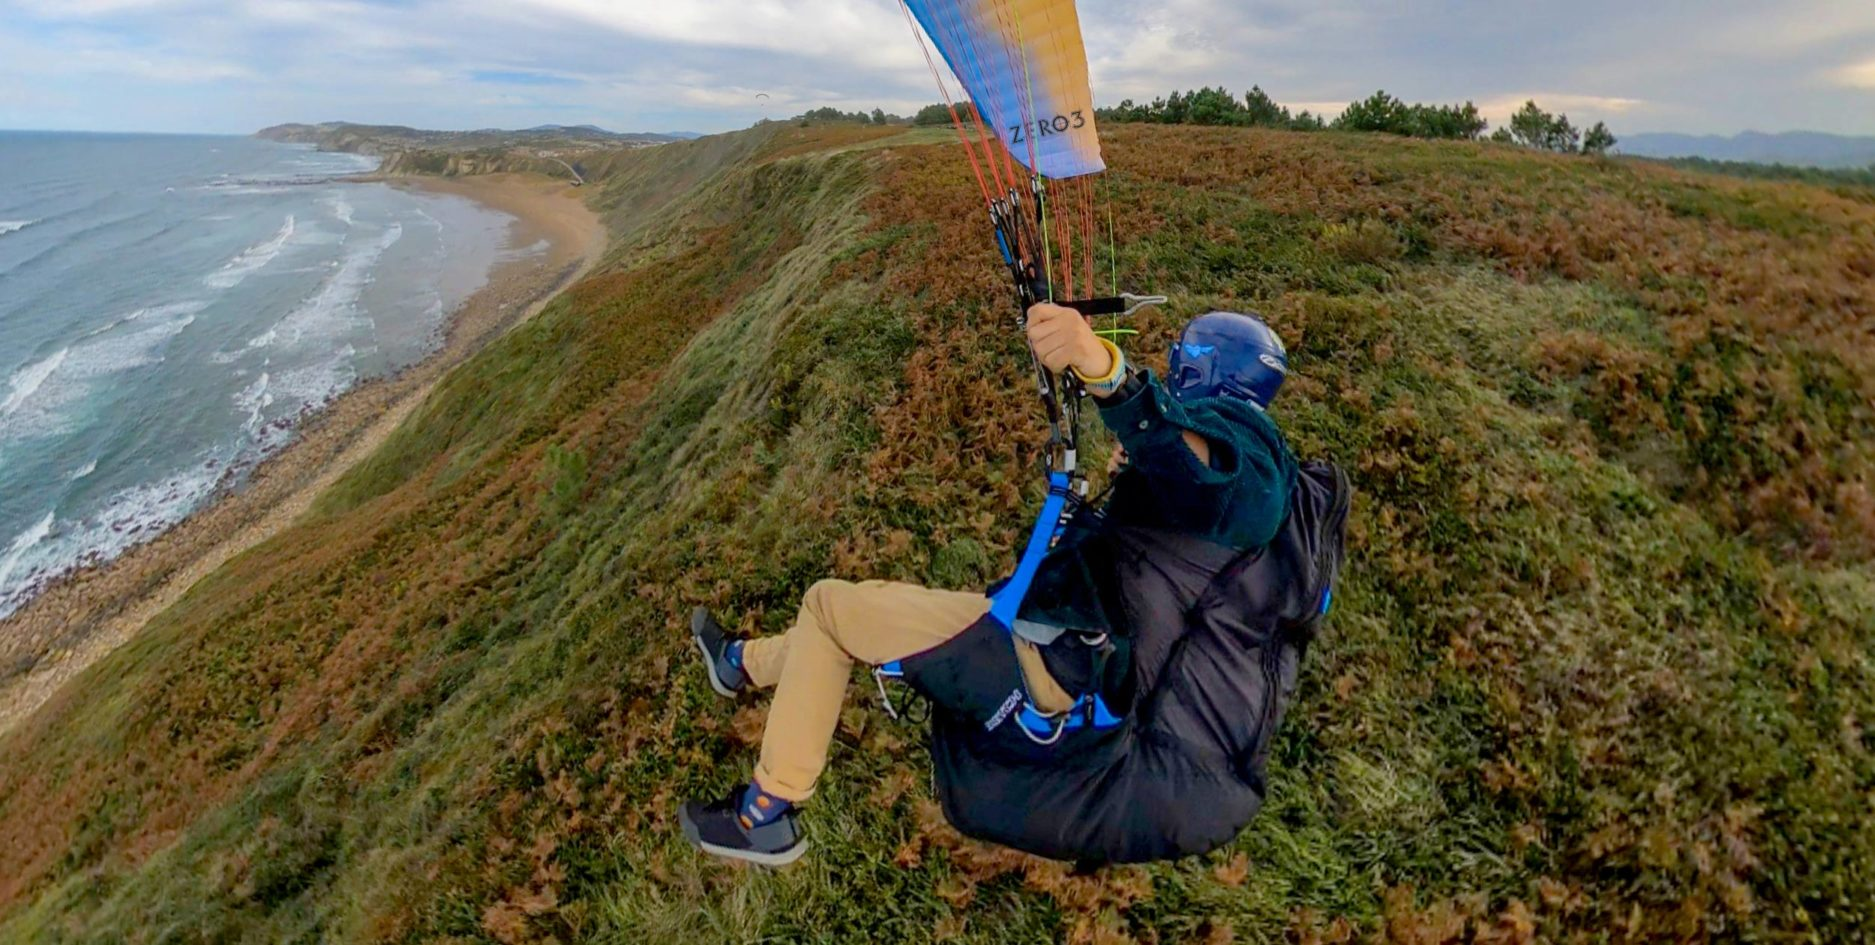 Ozone Switch paraglider harness